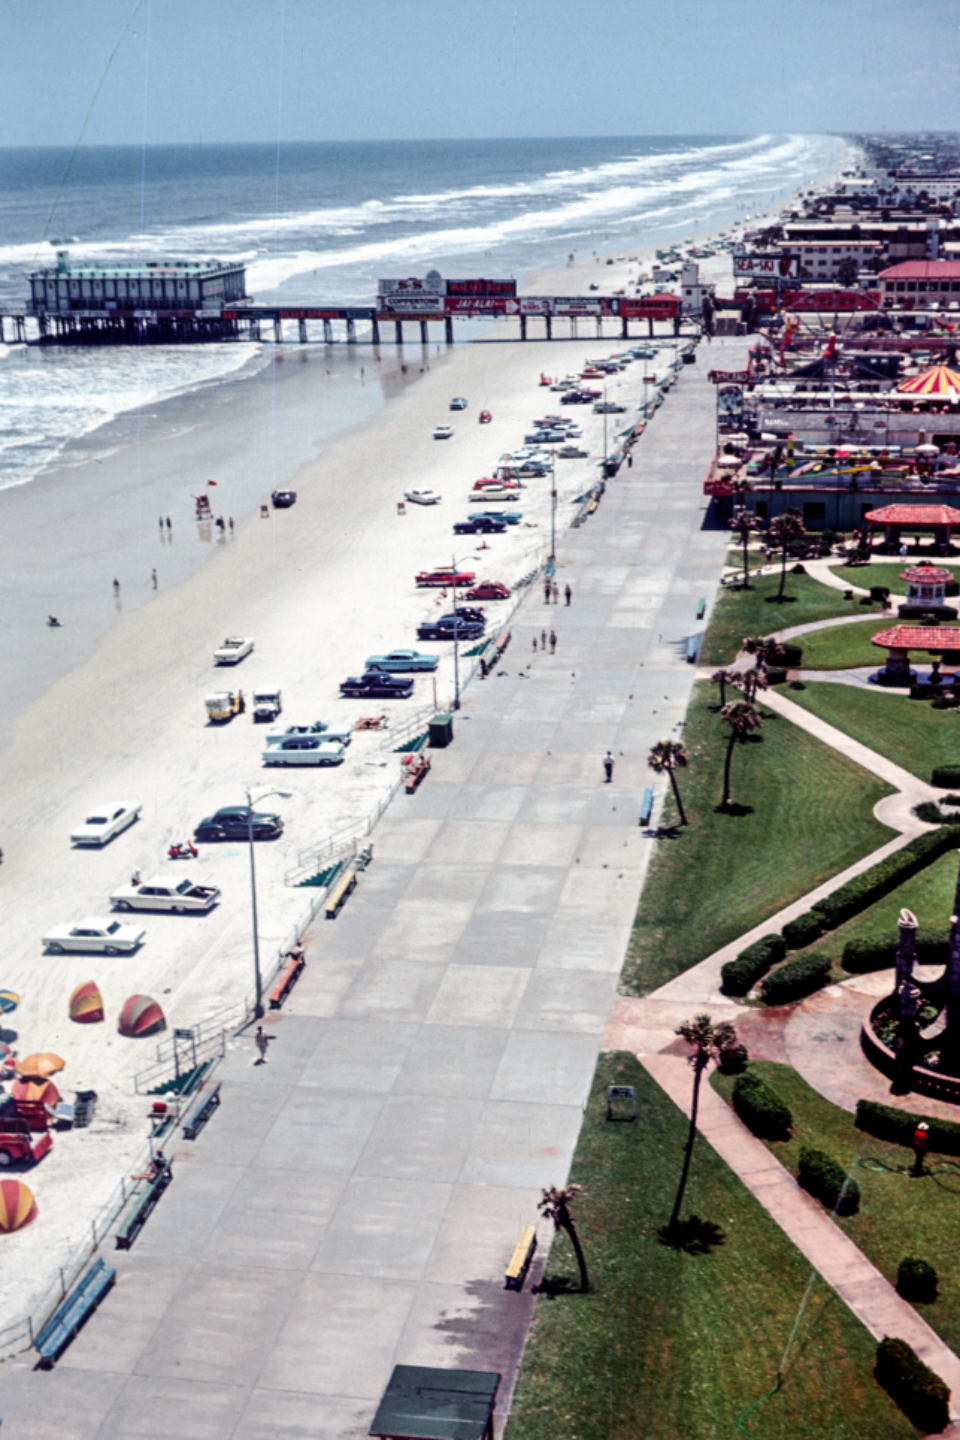 beach cars coast pier crowd people retro view autos vacation travel sky ocean sand fun vintage film walk vendors